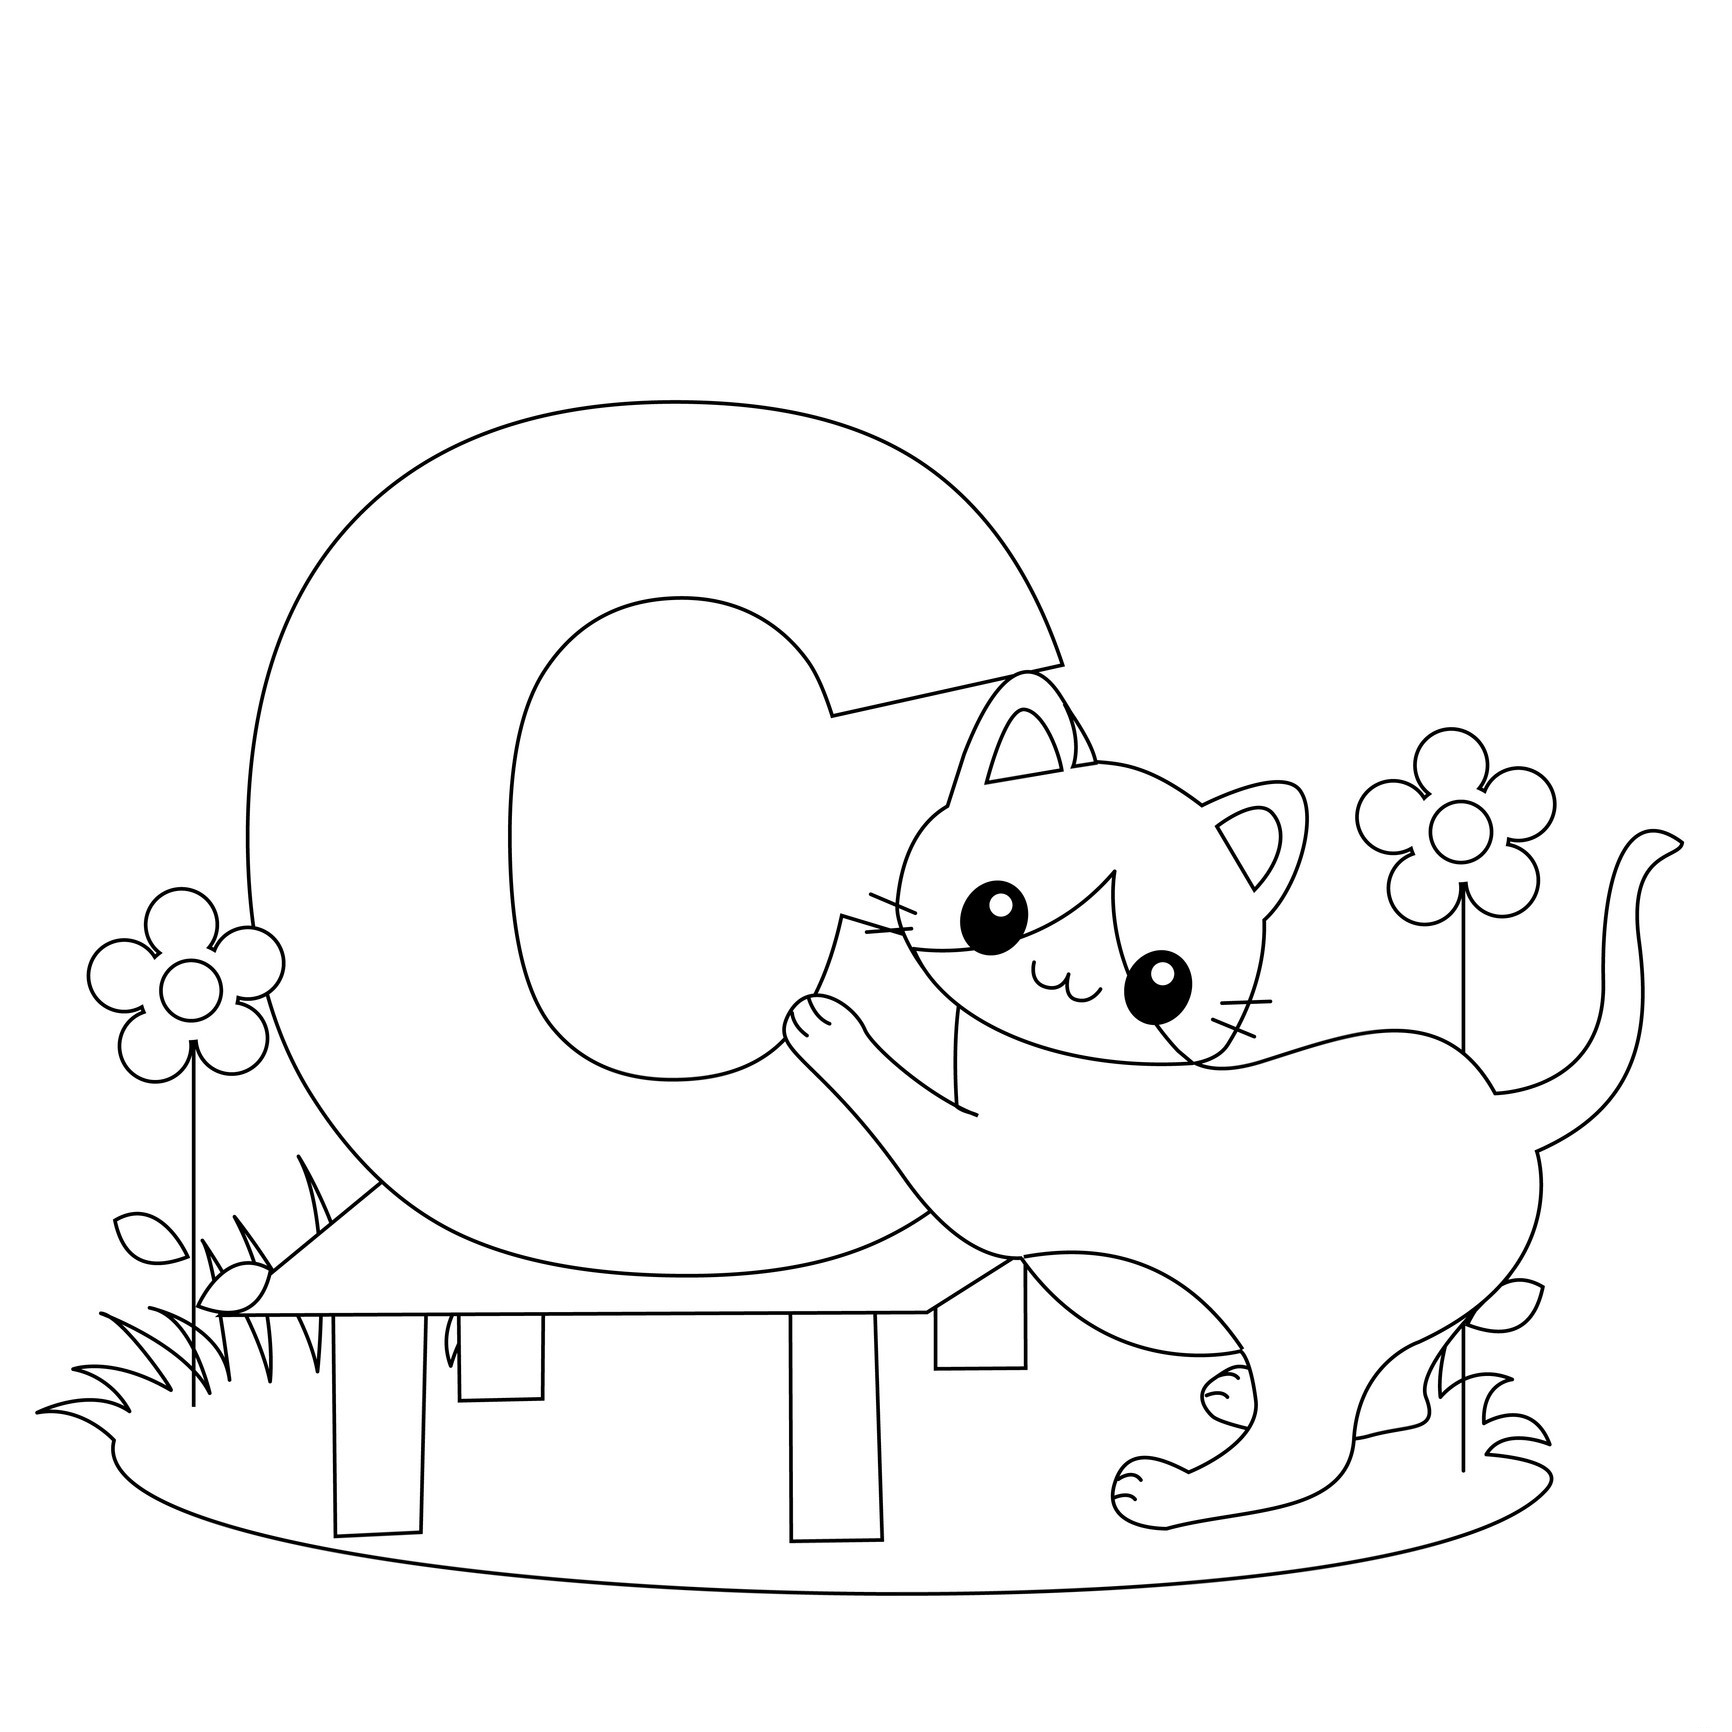 coloring pages for alphalbet - photo#4